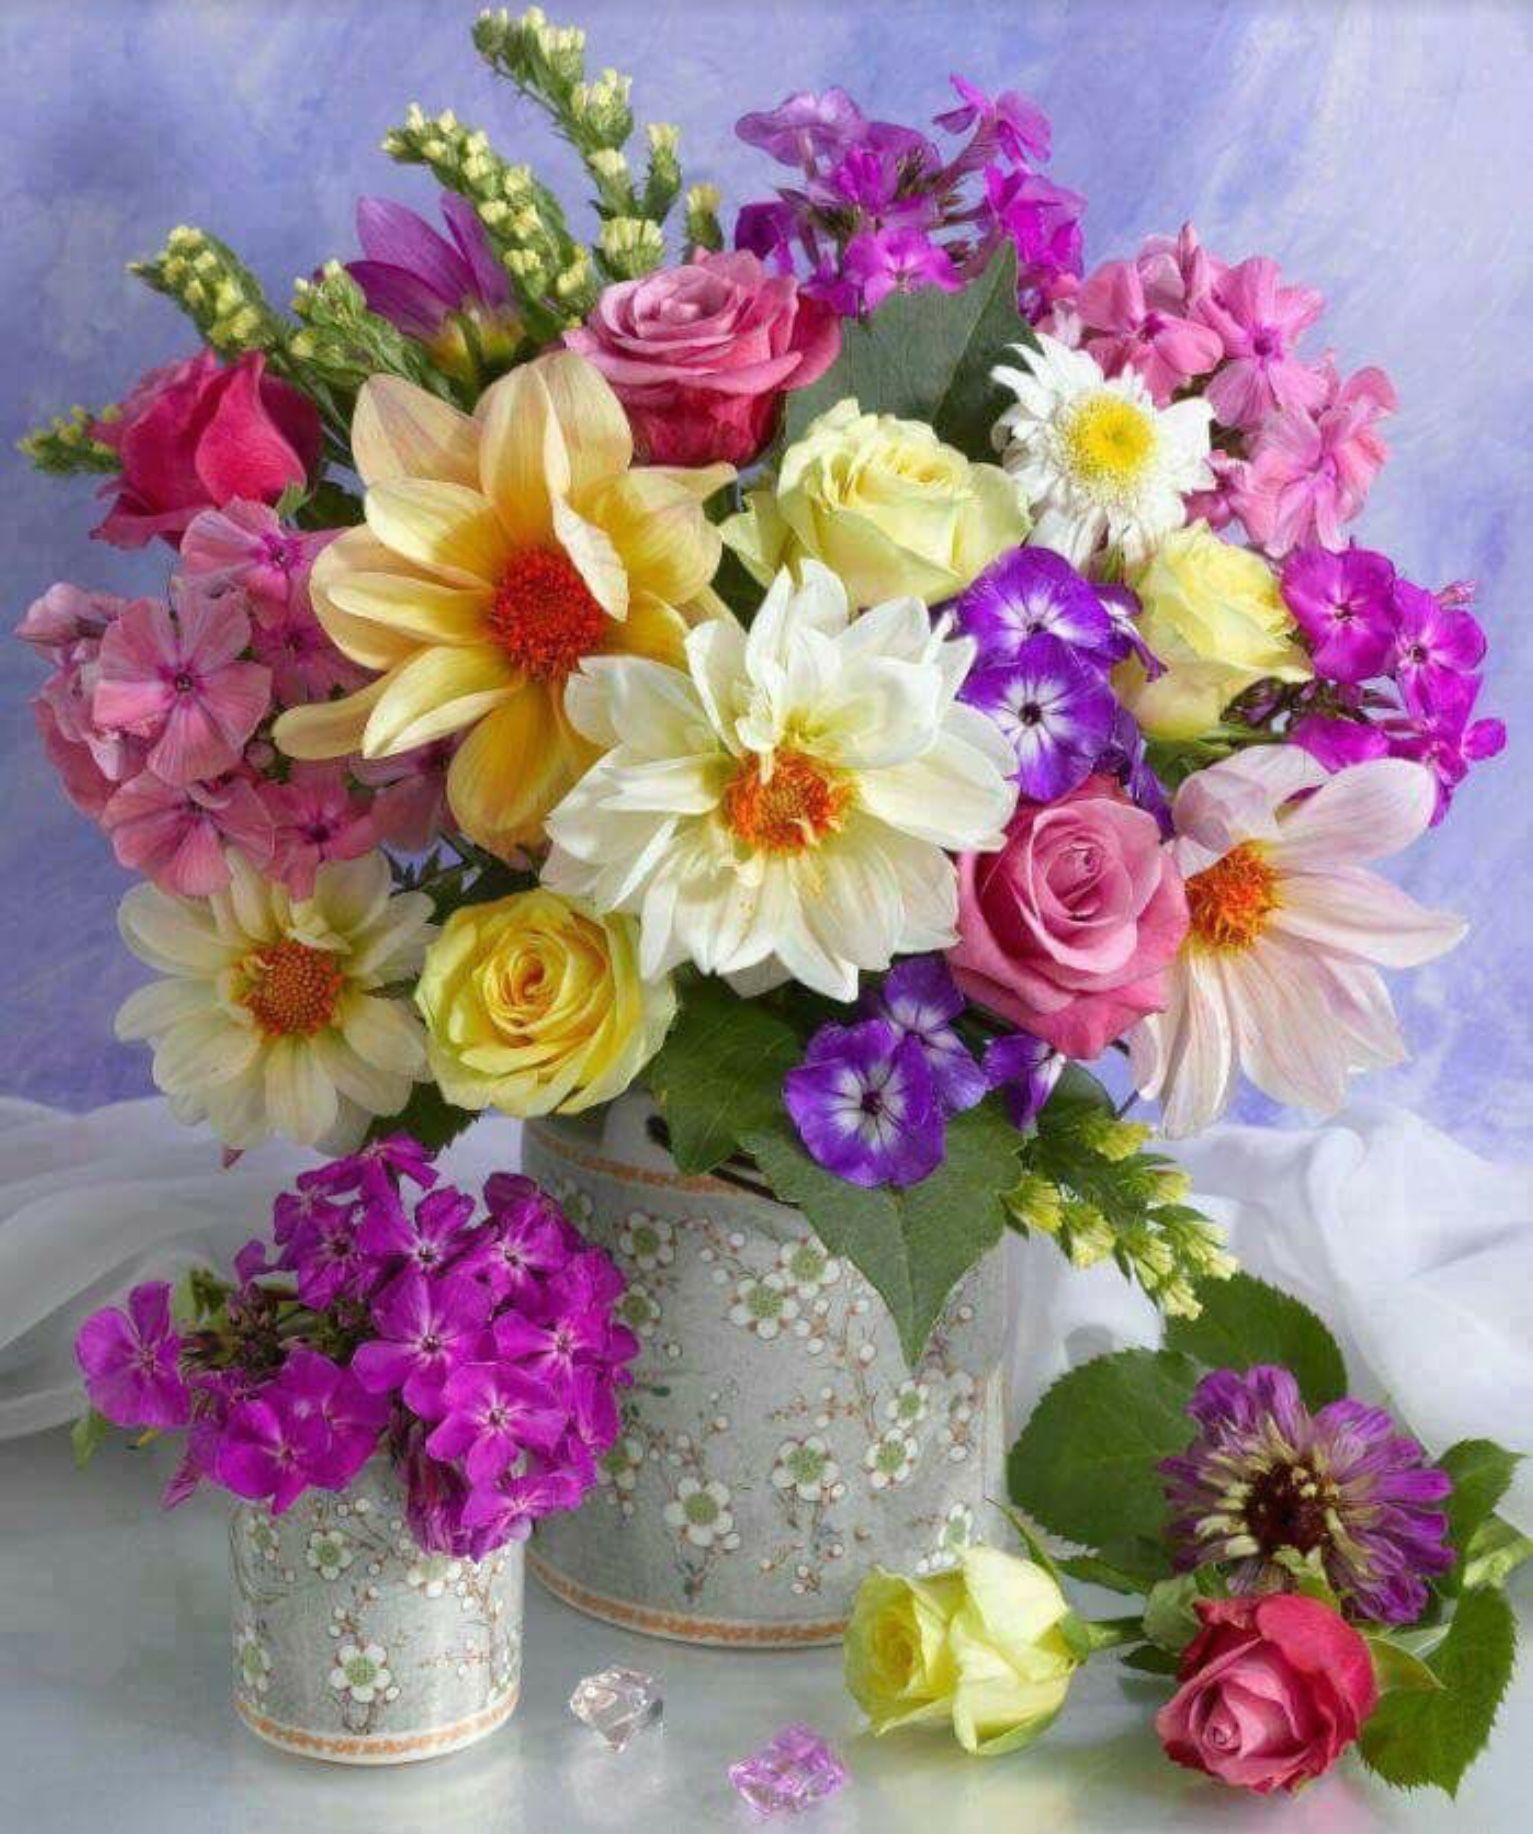 Pin by elvia sanchez on beautiful flowers for you pinterest how to arrange flowers beautifully best options for floral arrangement its easier than most people think to make a beautiful flower arrangement izmirmasajfo Images